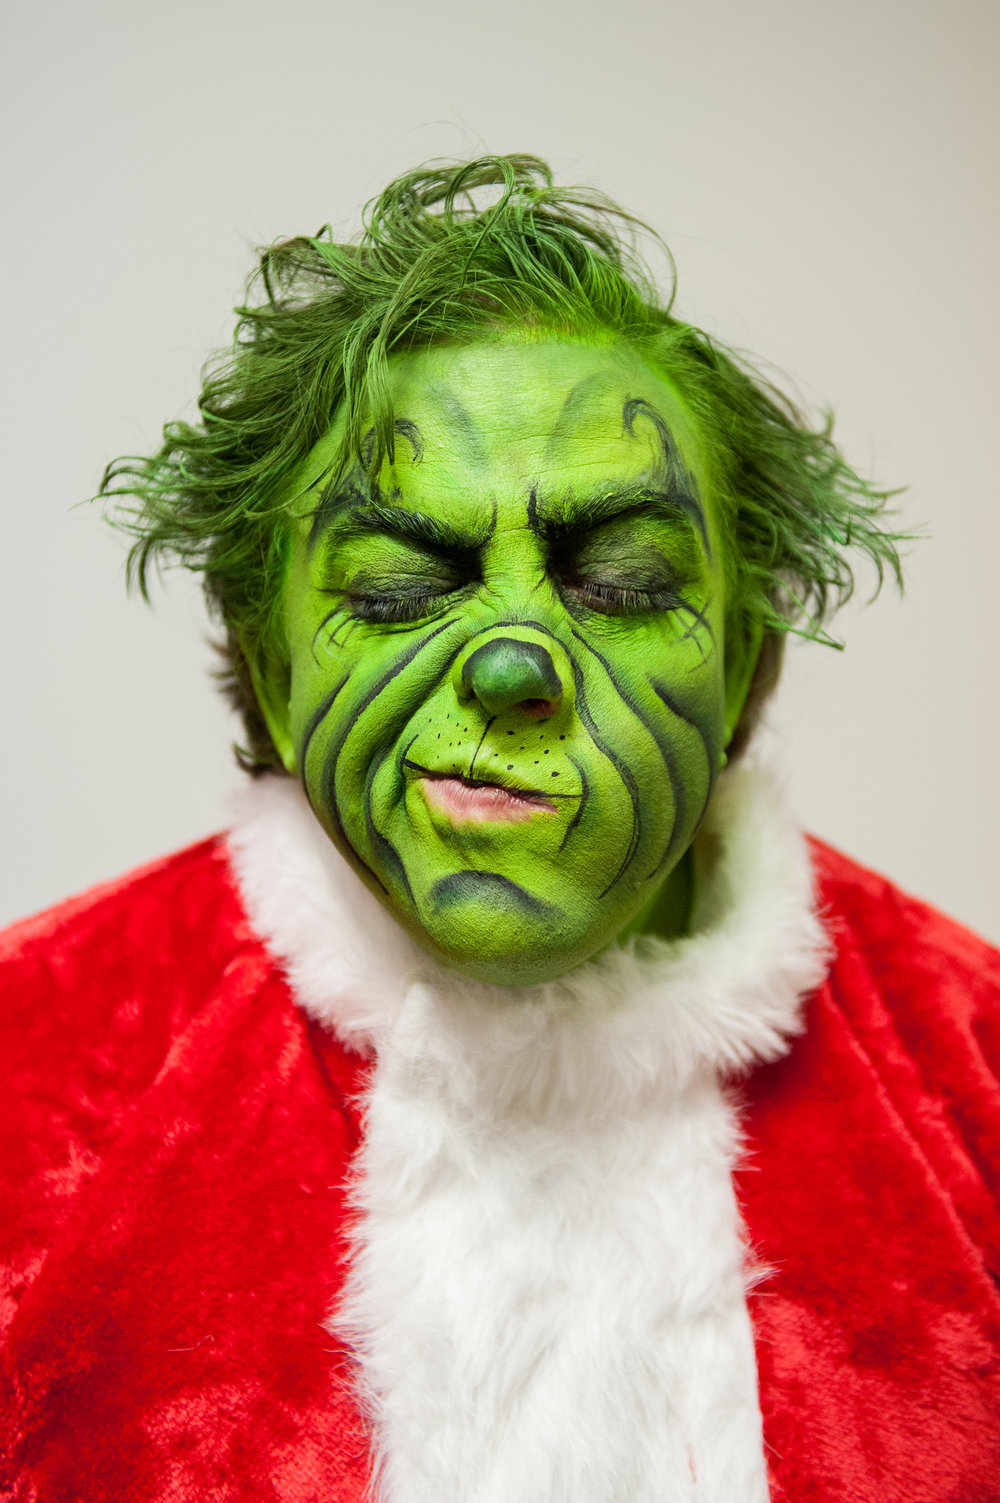 Grinch Headshots_001.JPG